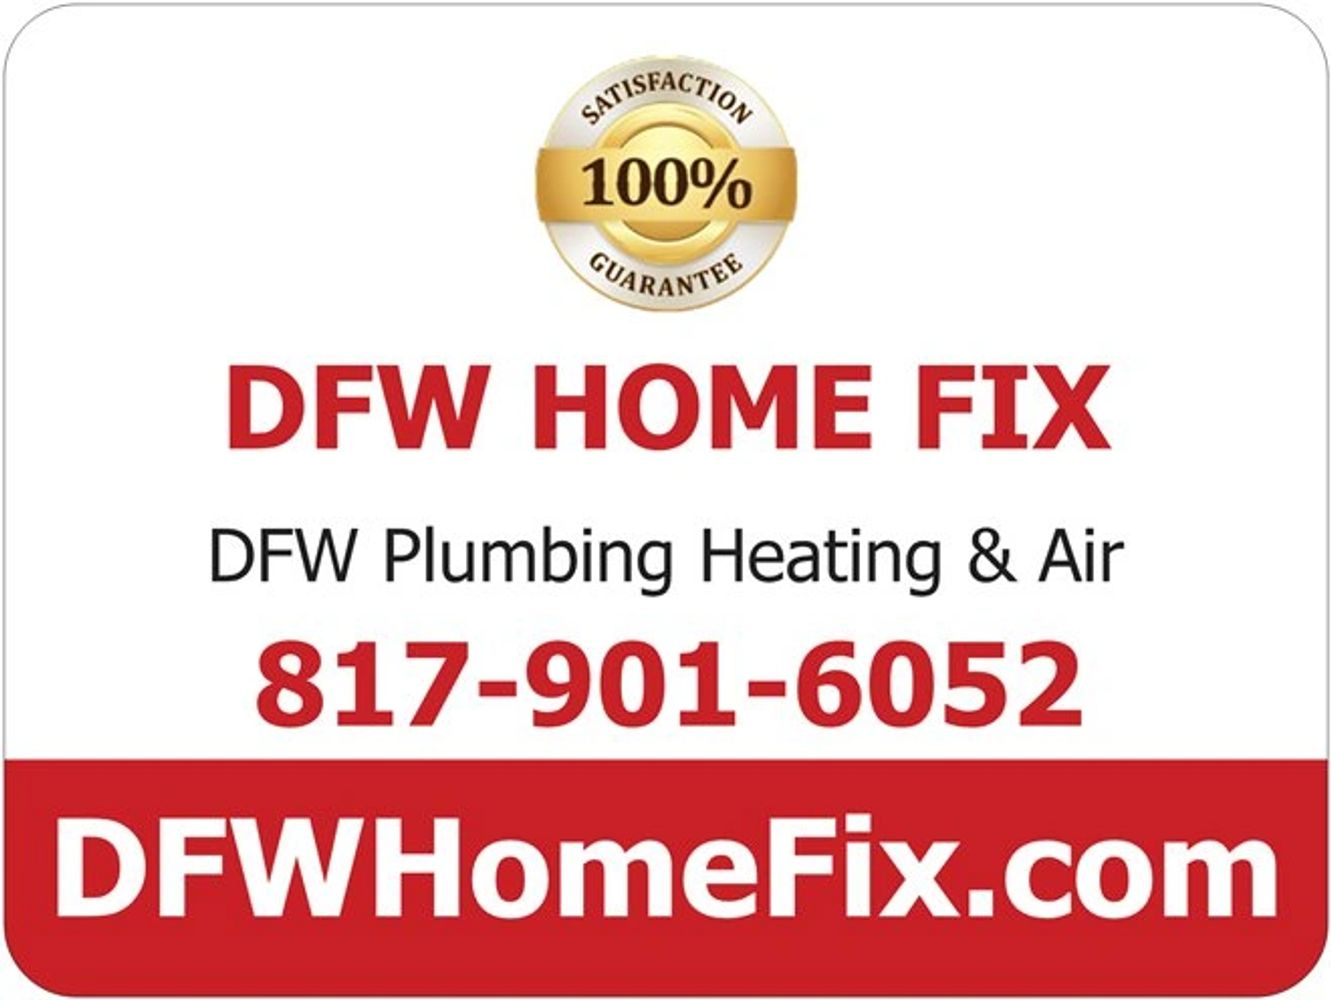 DFW Home Fix and DFW Plumbing Service is the plumber near me to call for plumbing service near me.